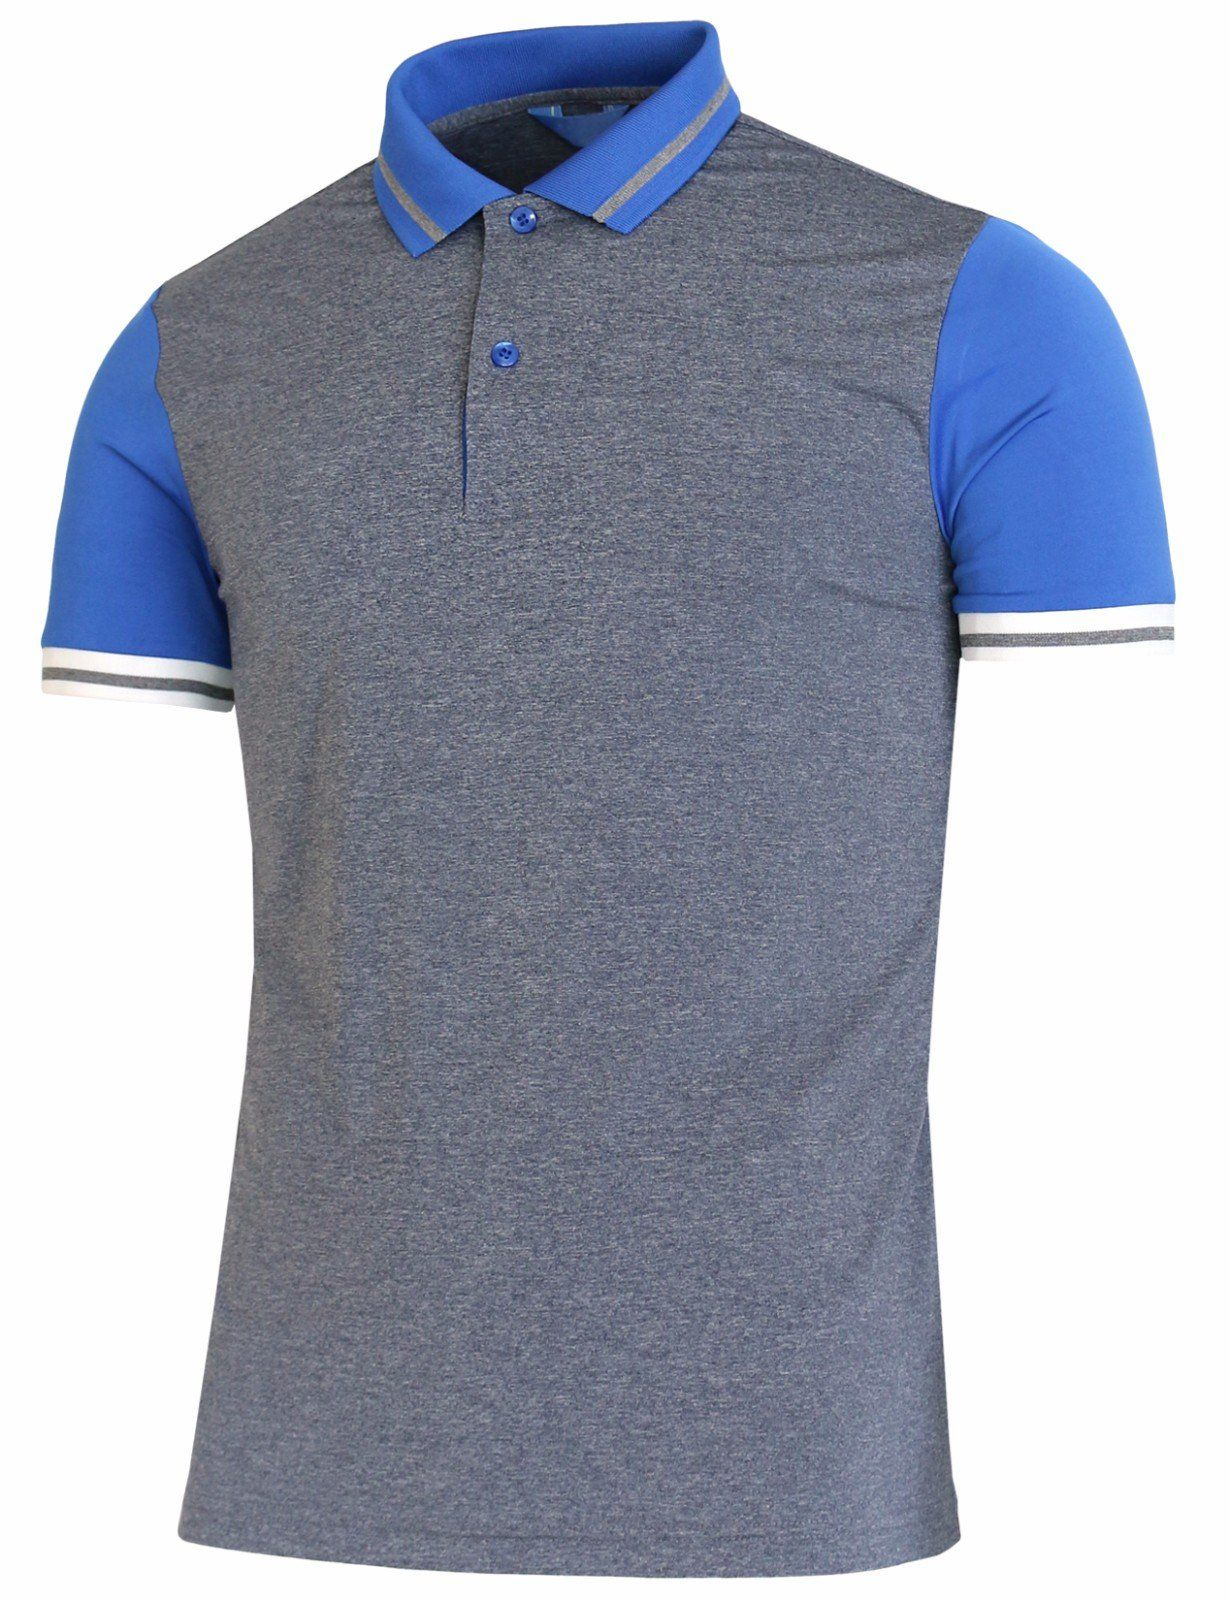 09a01885 Men Golf Clothing - BCPOLO Mens Polo Shirt Spandex Raglan Short Sleeve  Athletic Polo Shirt Blue L